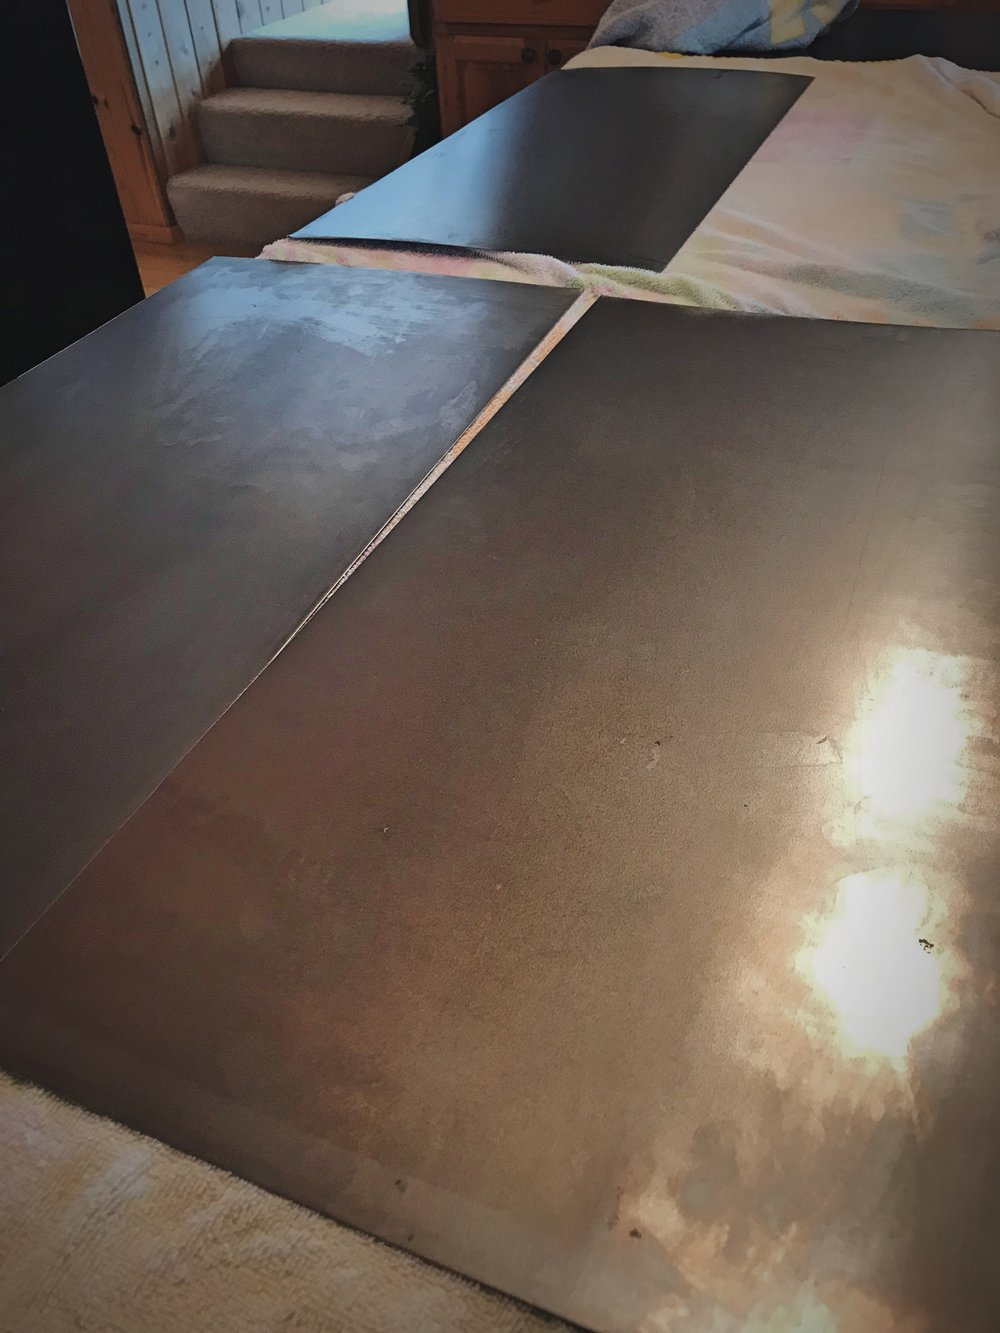 The weldable sheet metal after being washed.